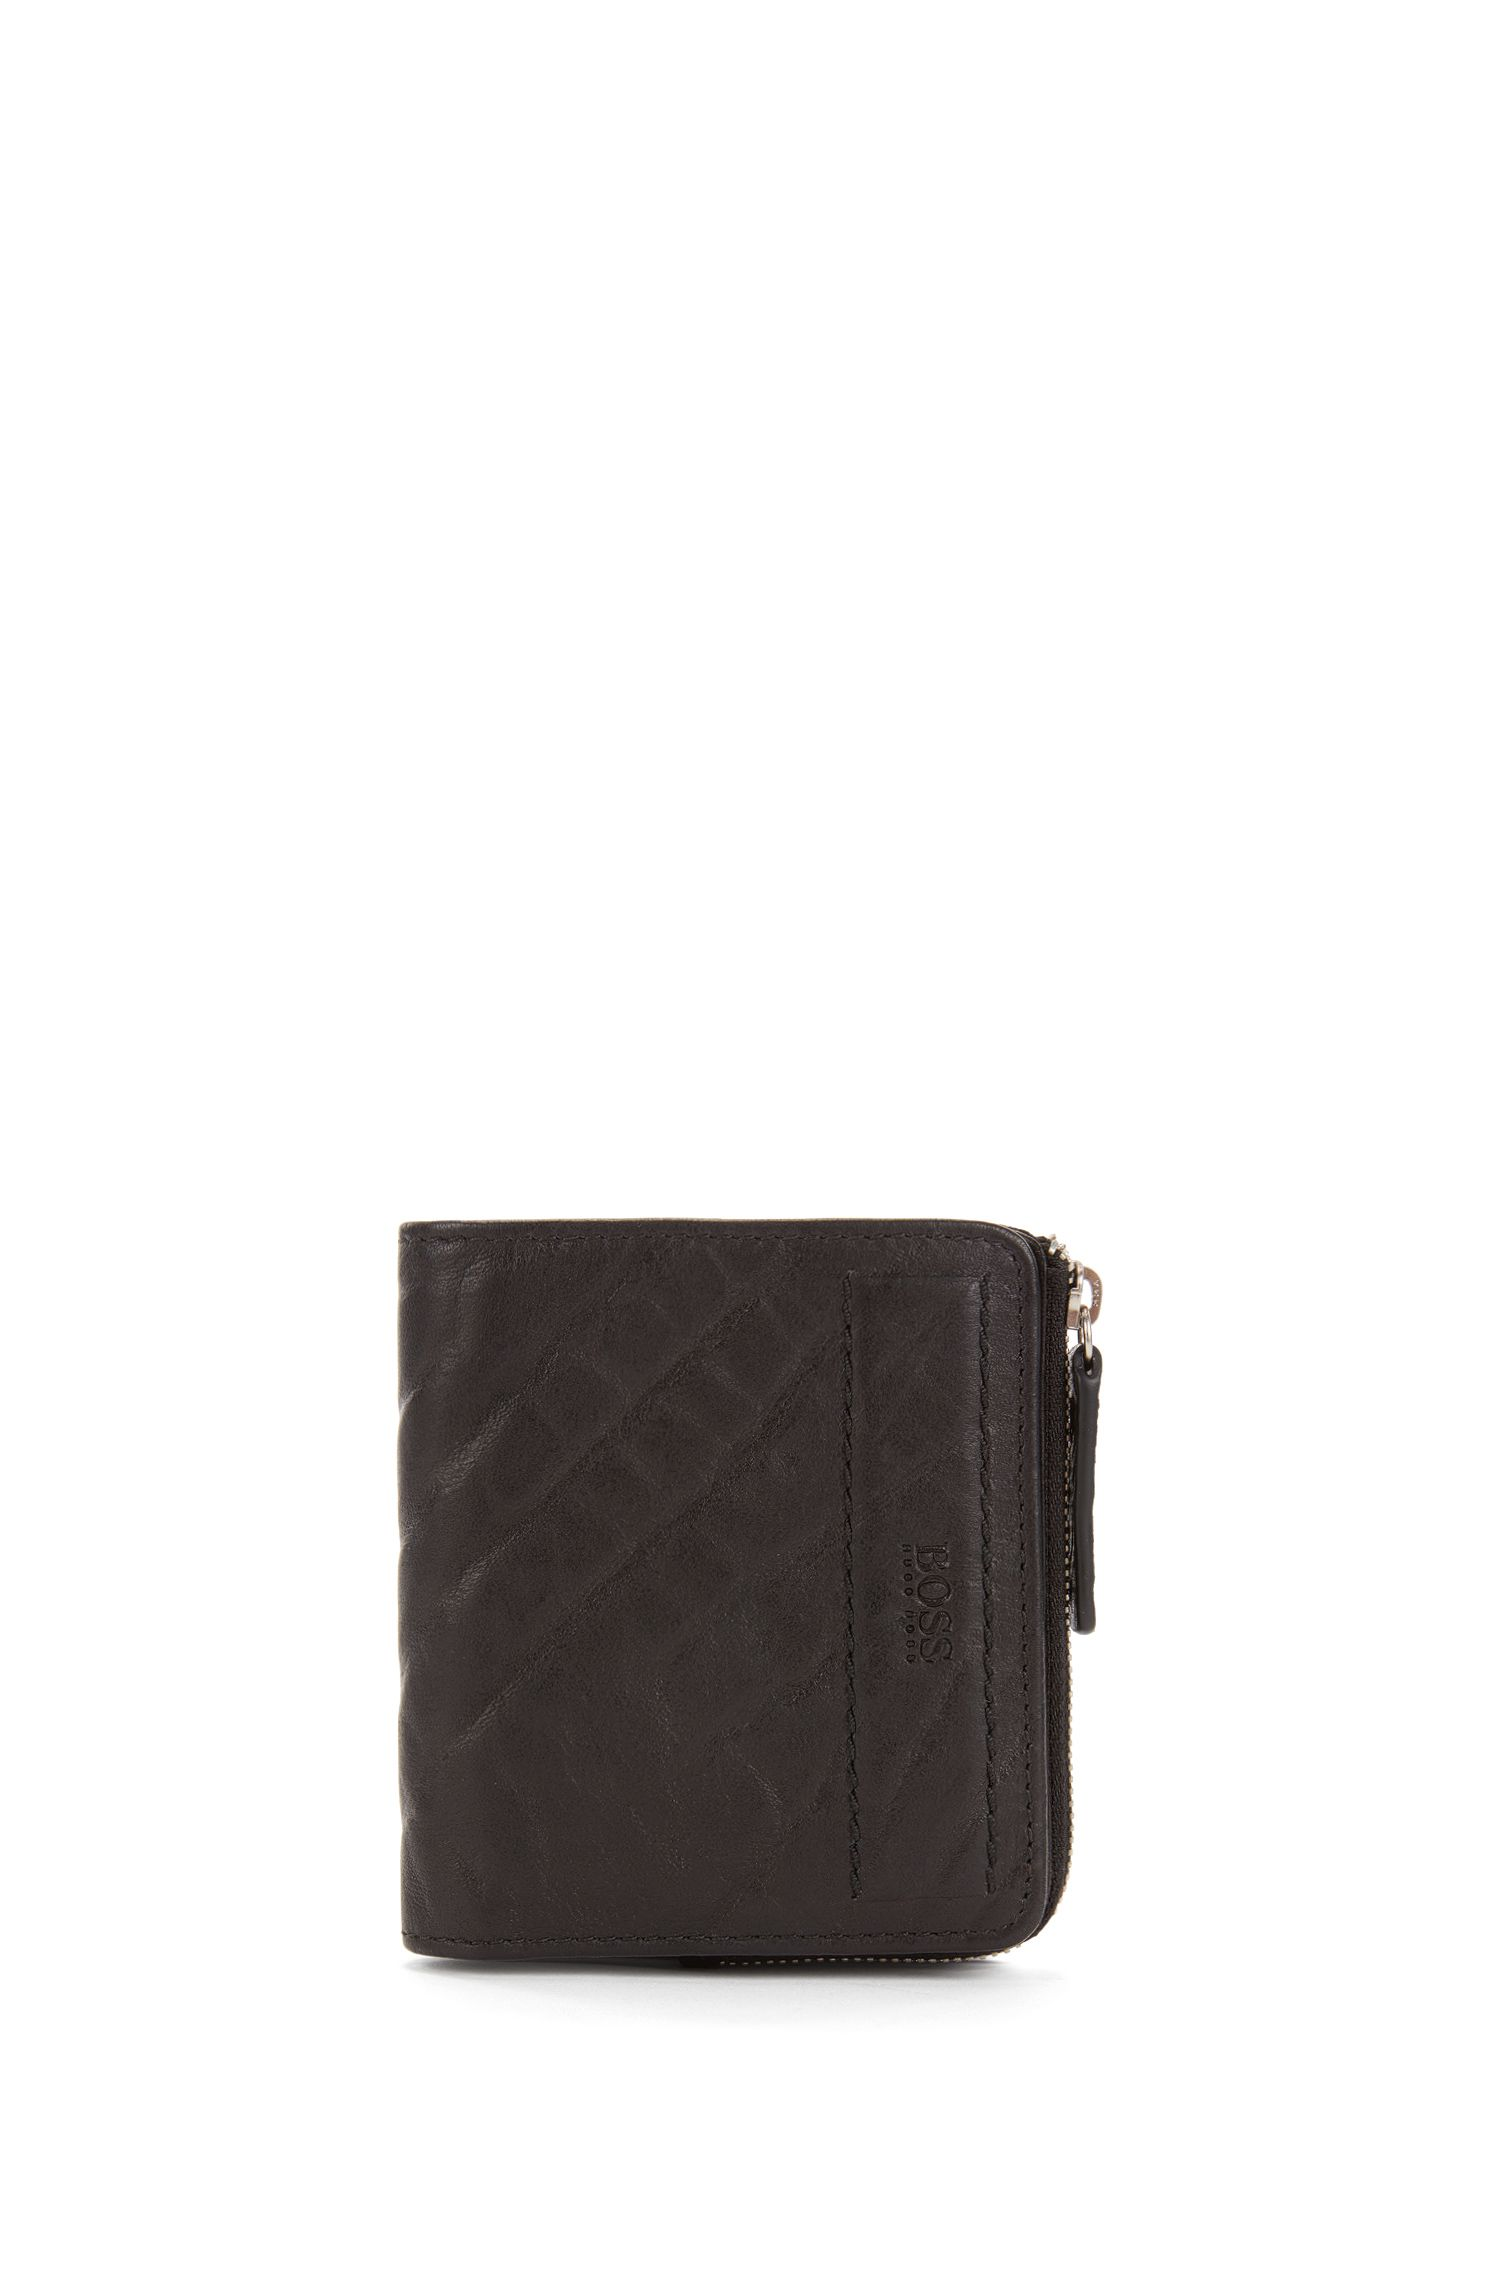 Small zip-around wallet in grained leather